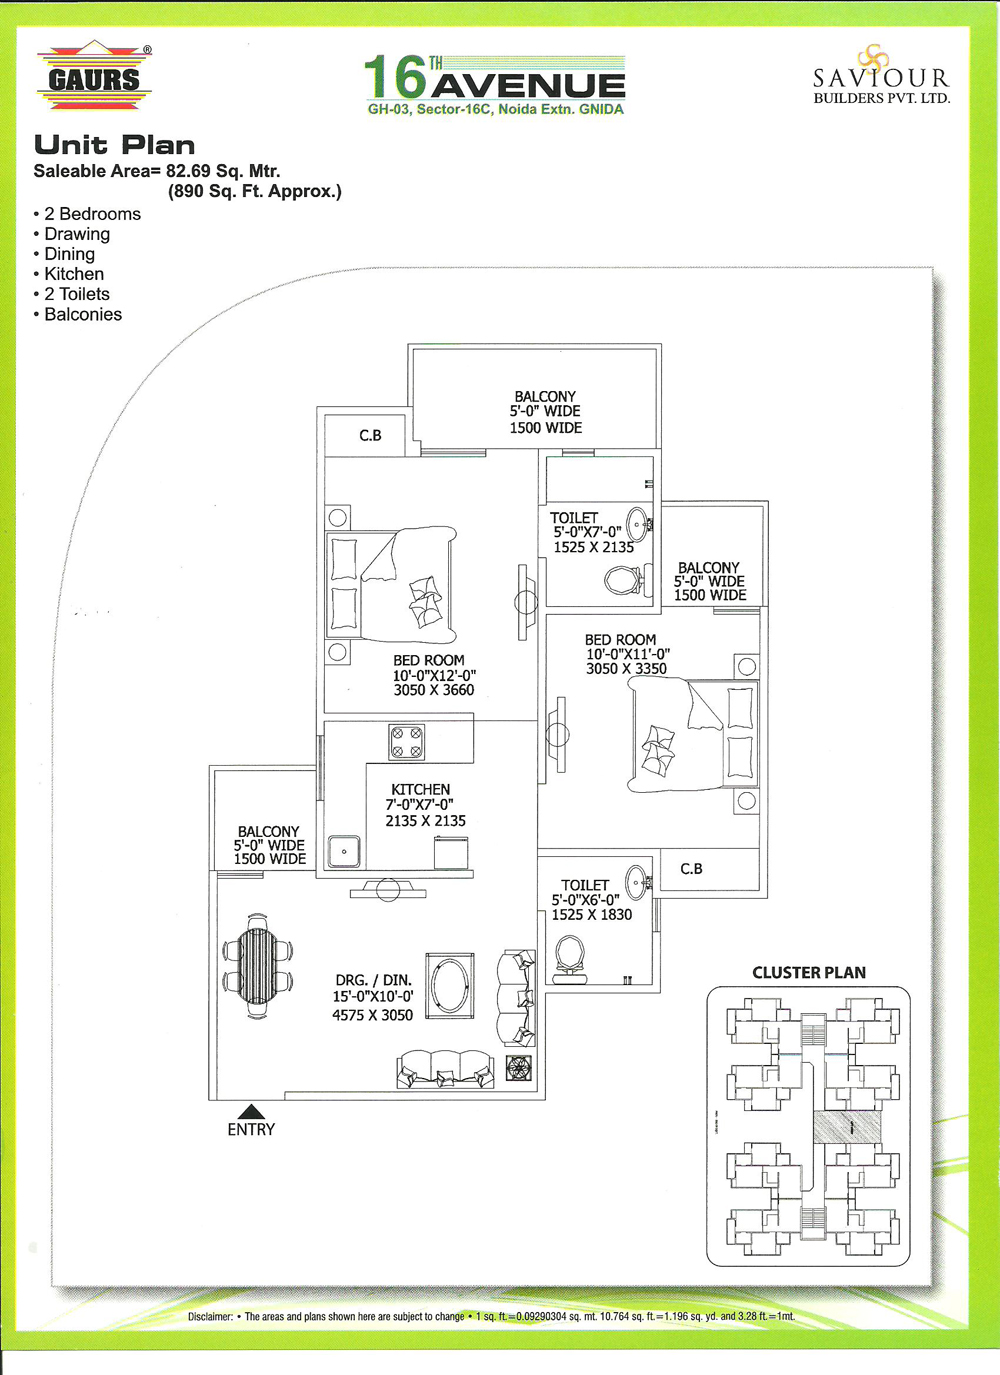 Gaur City2 Noida Extension Description